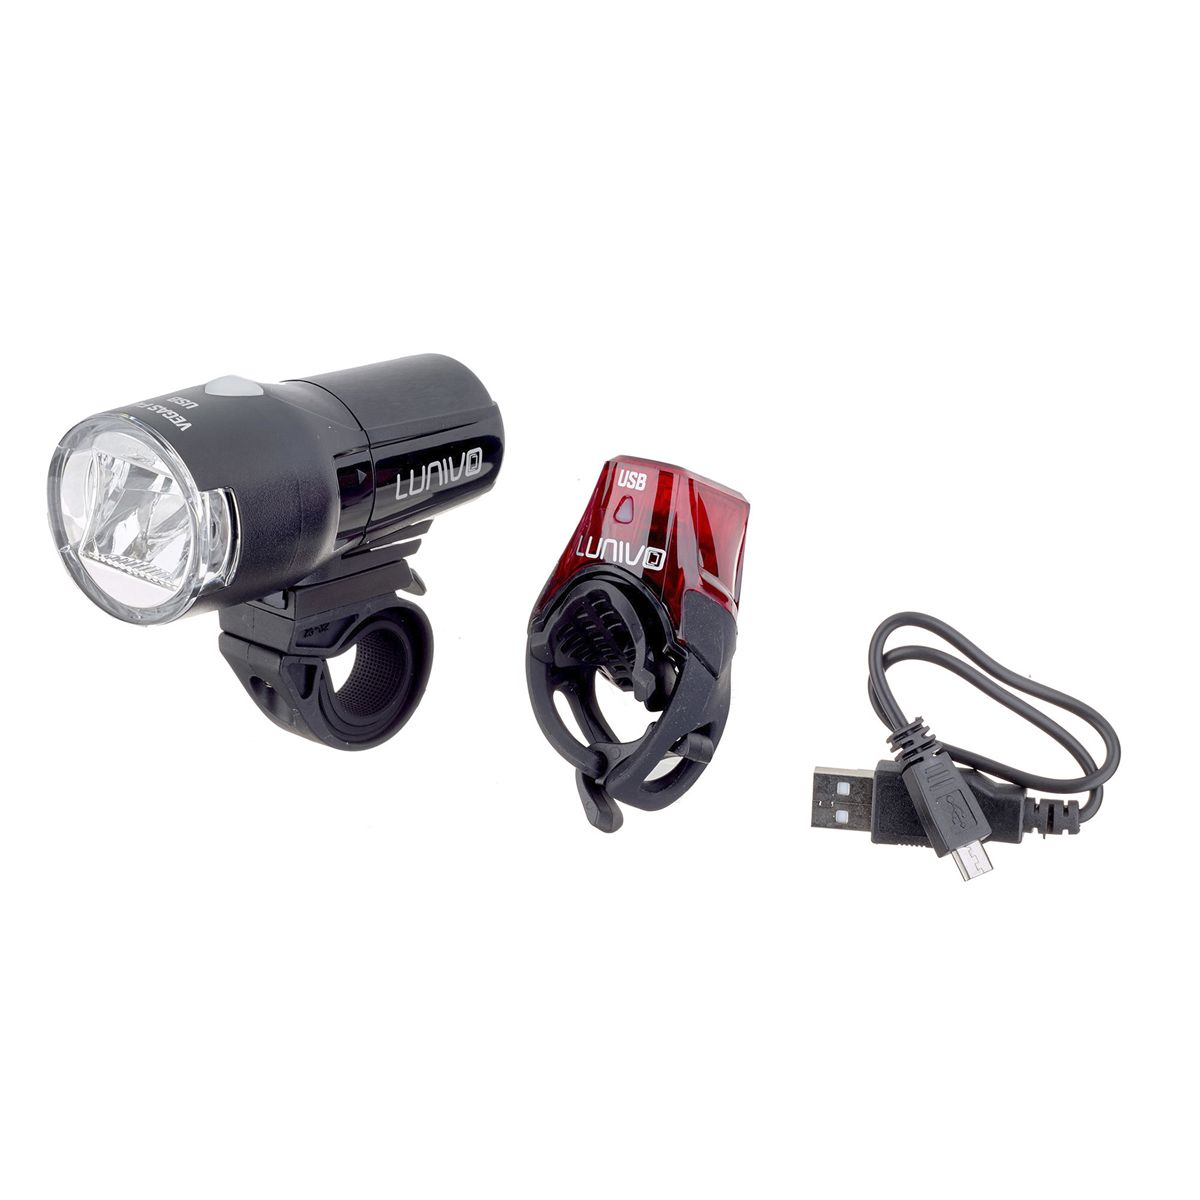 Vegas F40 USB and Vegas R II USB LED light set